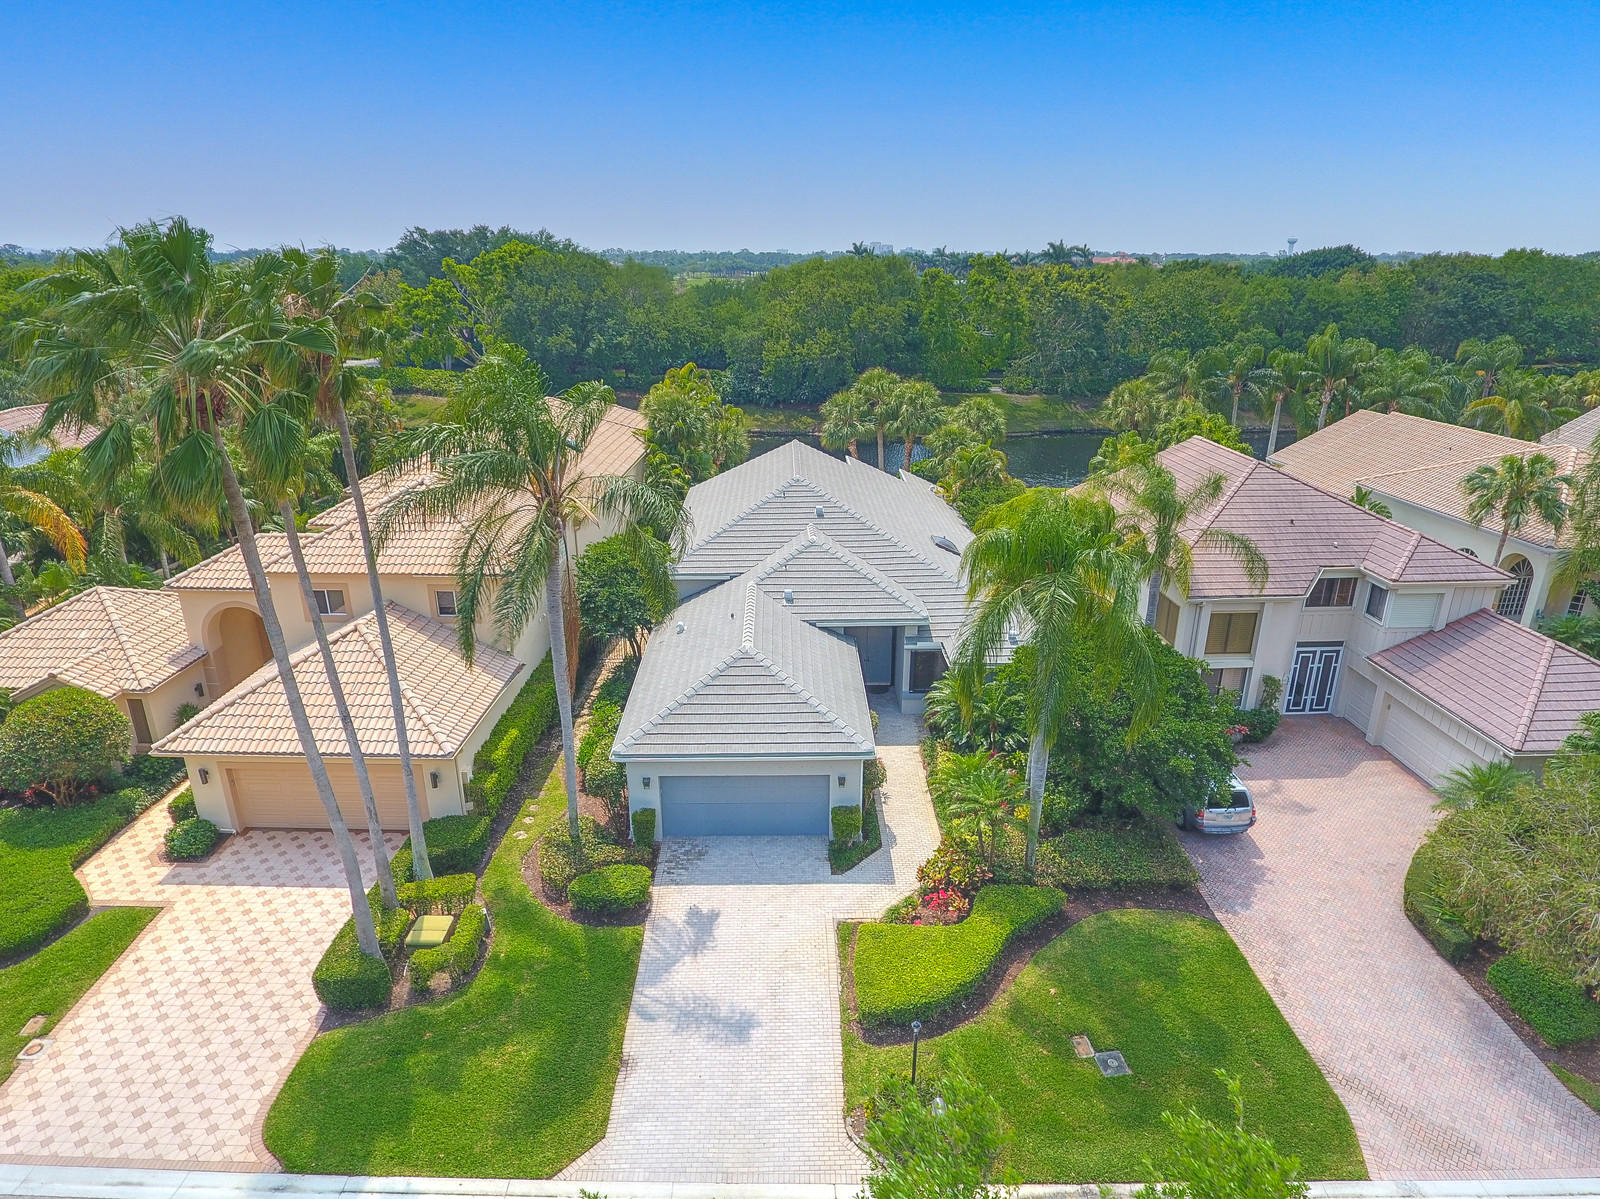 3326 Degas Drive, Palm Beach Gardens, Florida 33410, 3 Bedrooms Bedrooms, ,4.1 BathroomsBathrooms,A,Single family,Degas,RX-10416484